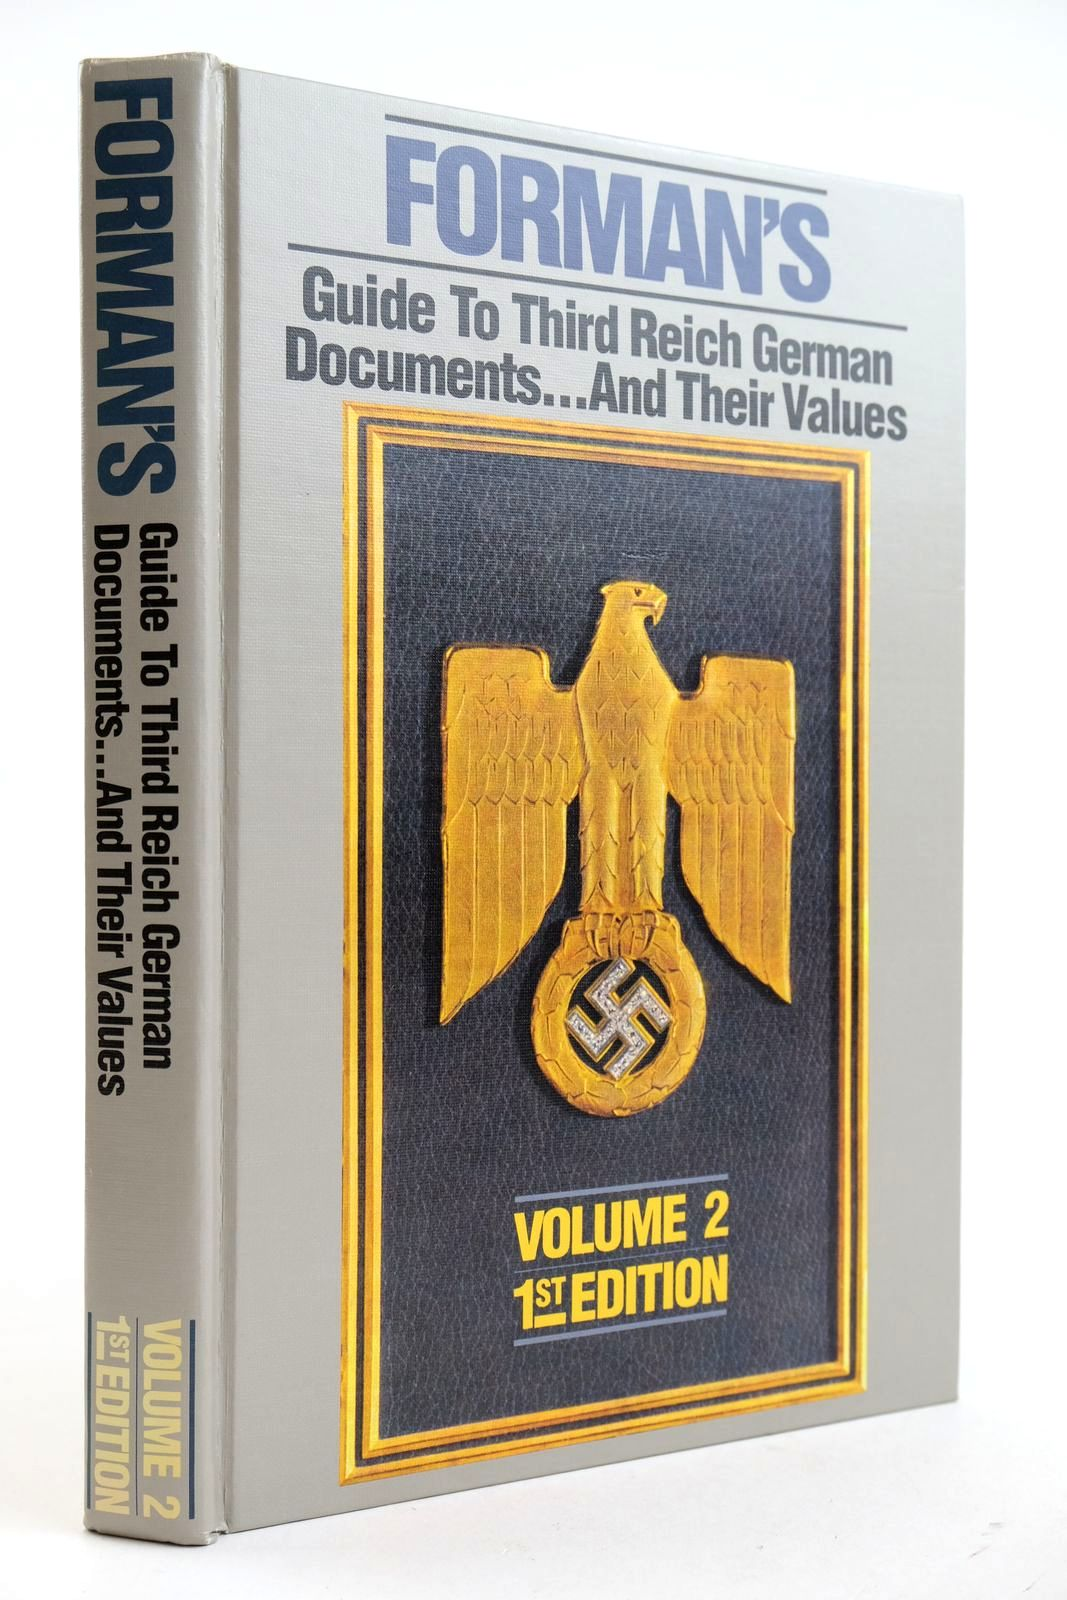 Photo of FORMAN'S GUIDE TO THIRD REICH GERMAN AWARDS... AND THEIR VALUES VOLUME 2- Stock Number: 2132737